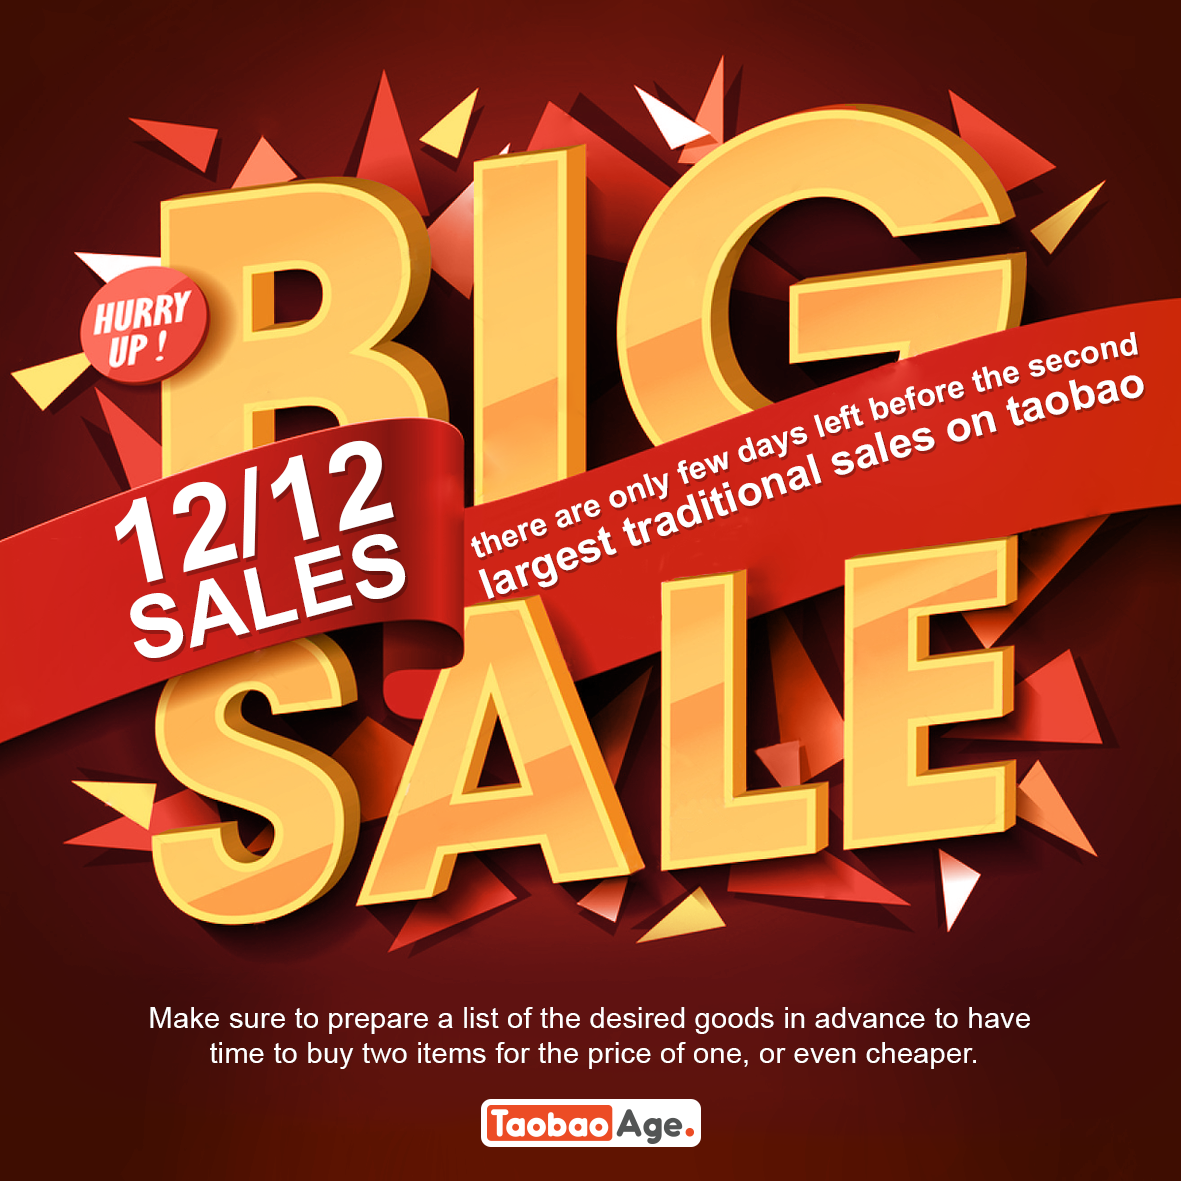 12.12 Sale on Taobao: Double 12, Double the savings